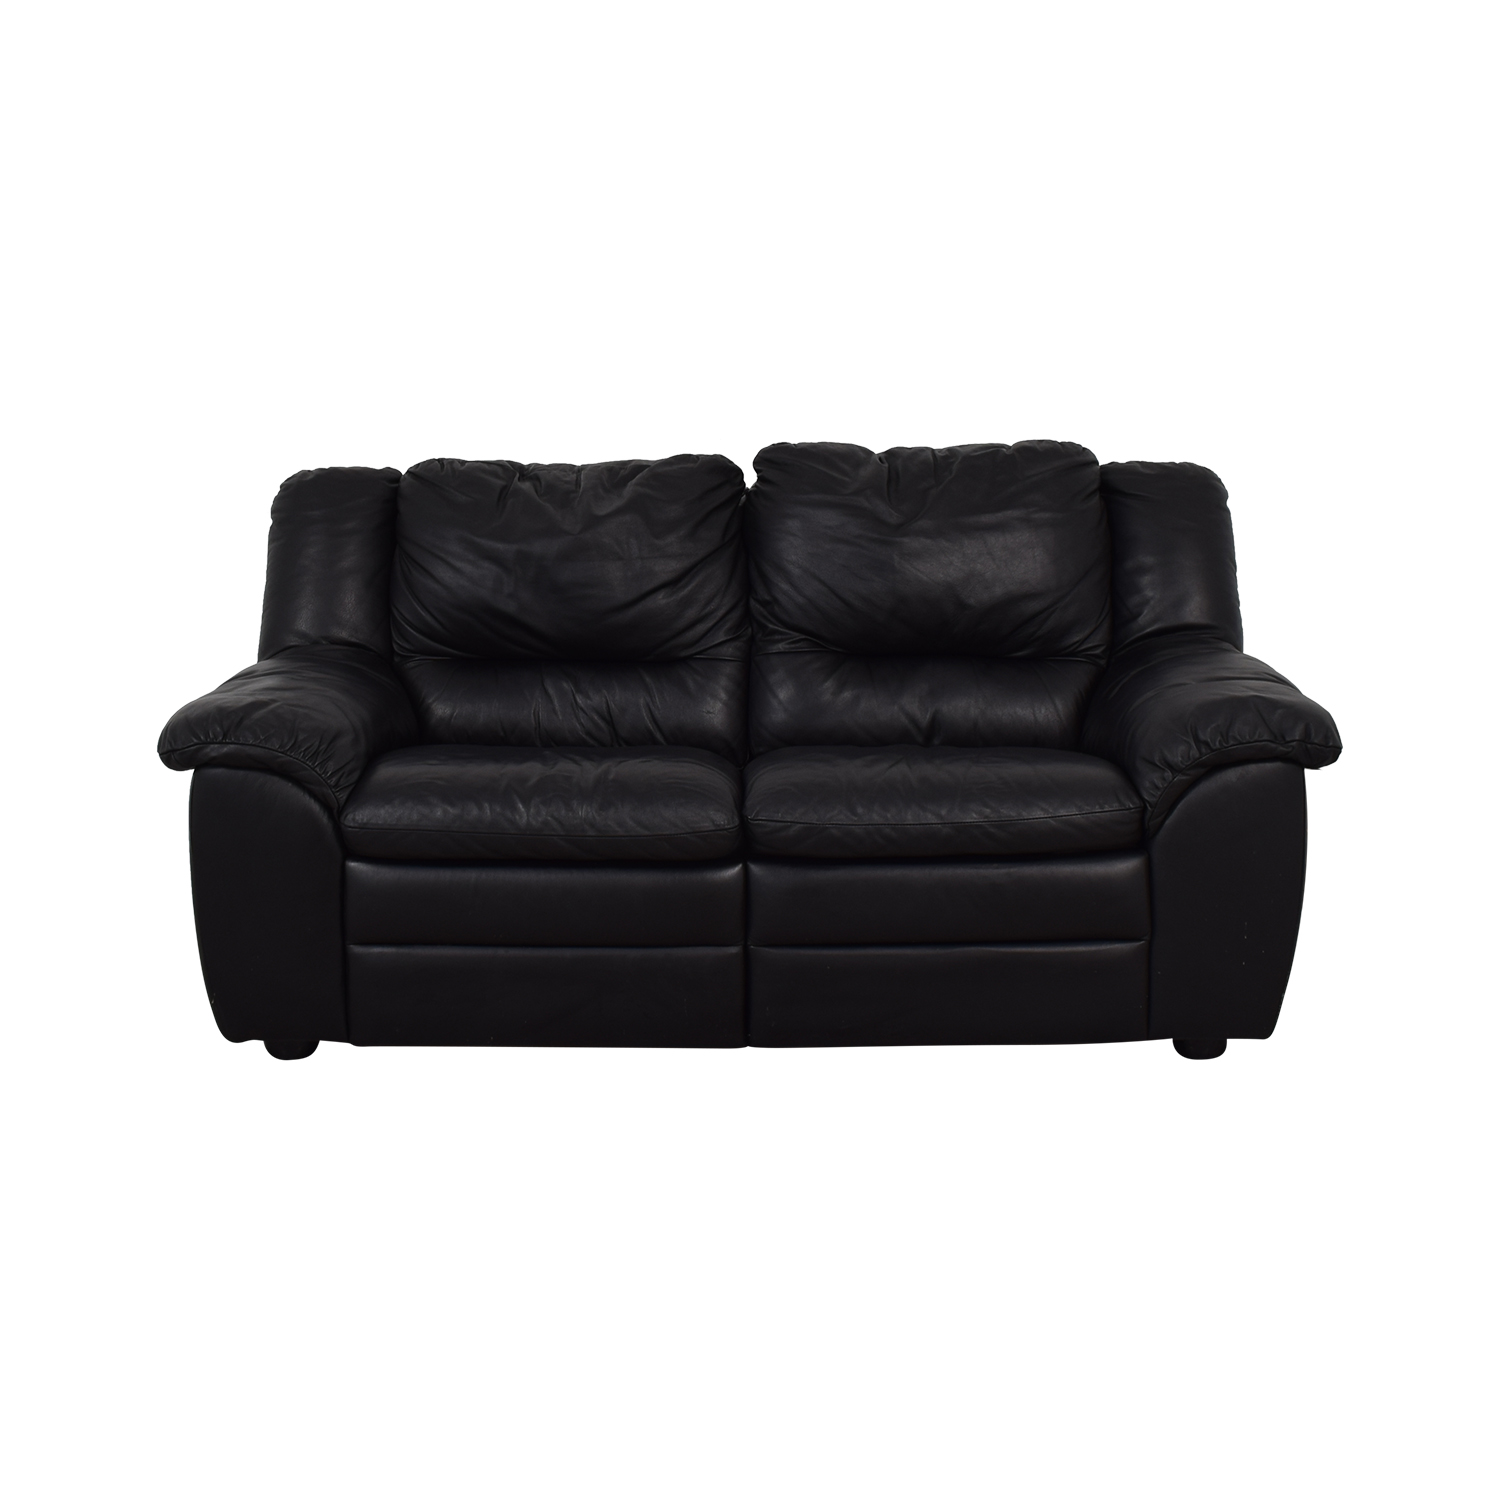 Natuzzi Natuzzi Black Leather Two-Cushion Recliner Loveseat nyc